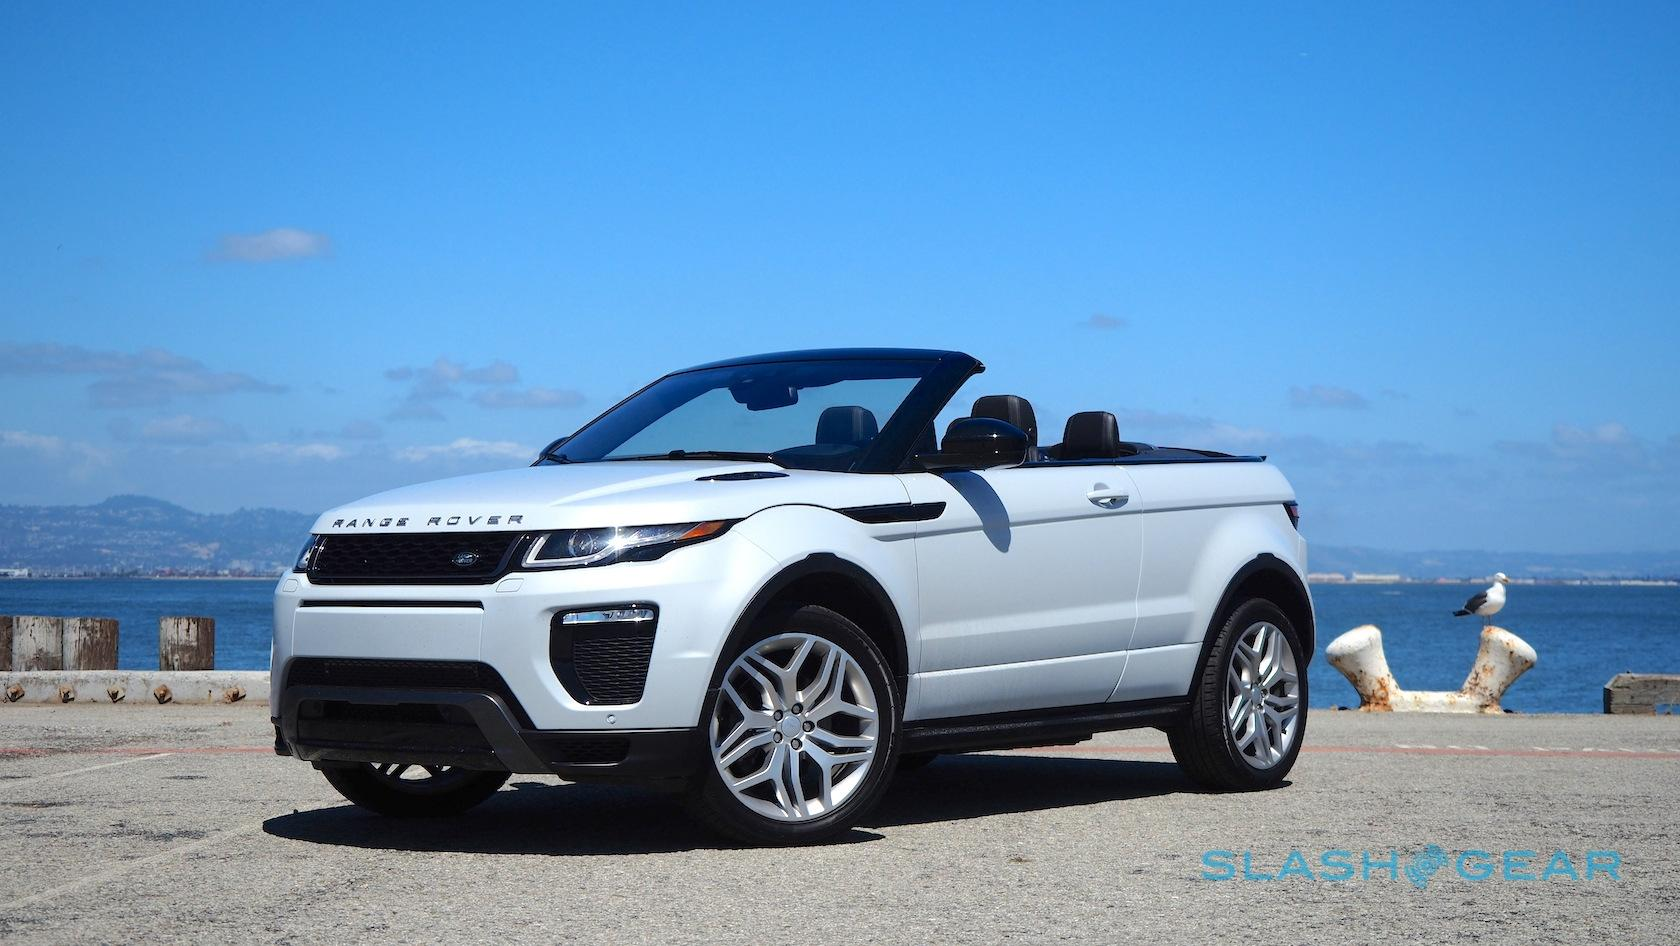 range rover evoque convertible review droptop suv an acquired taste slashgear. Black Bedroom Furniture Sets. Home Design Ideas